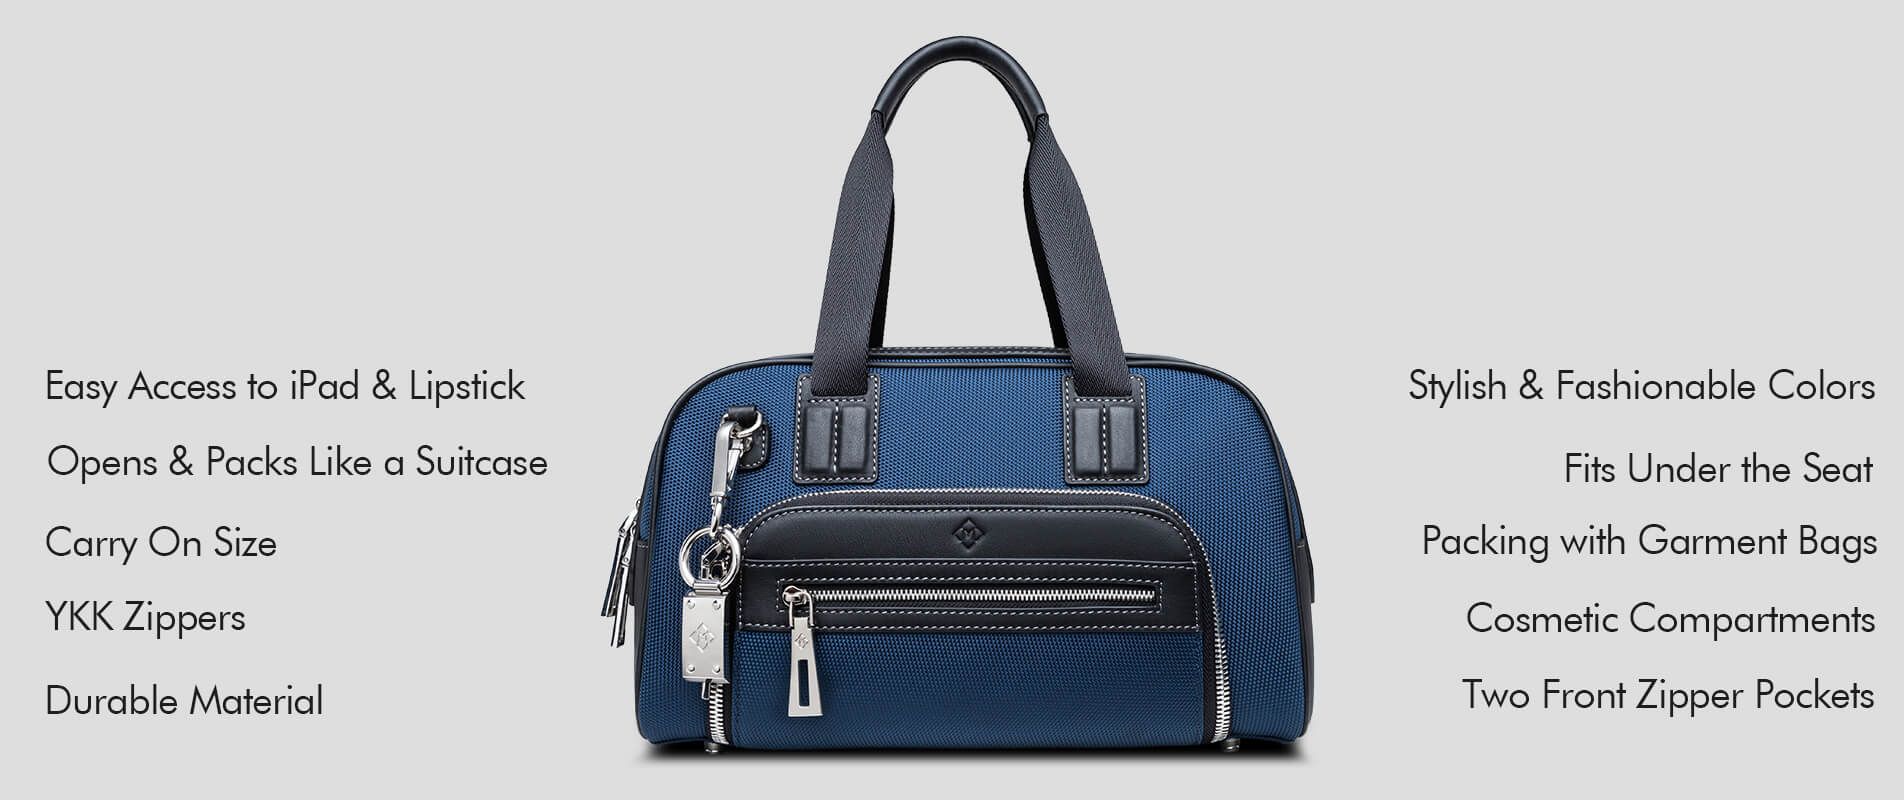 The Most Functional Mini Travel Bag